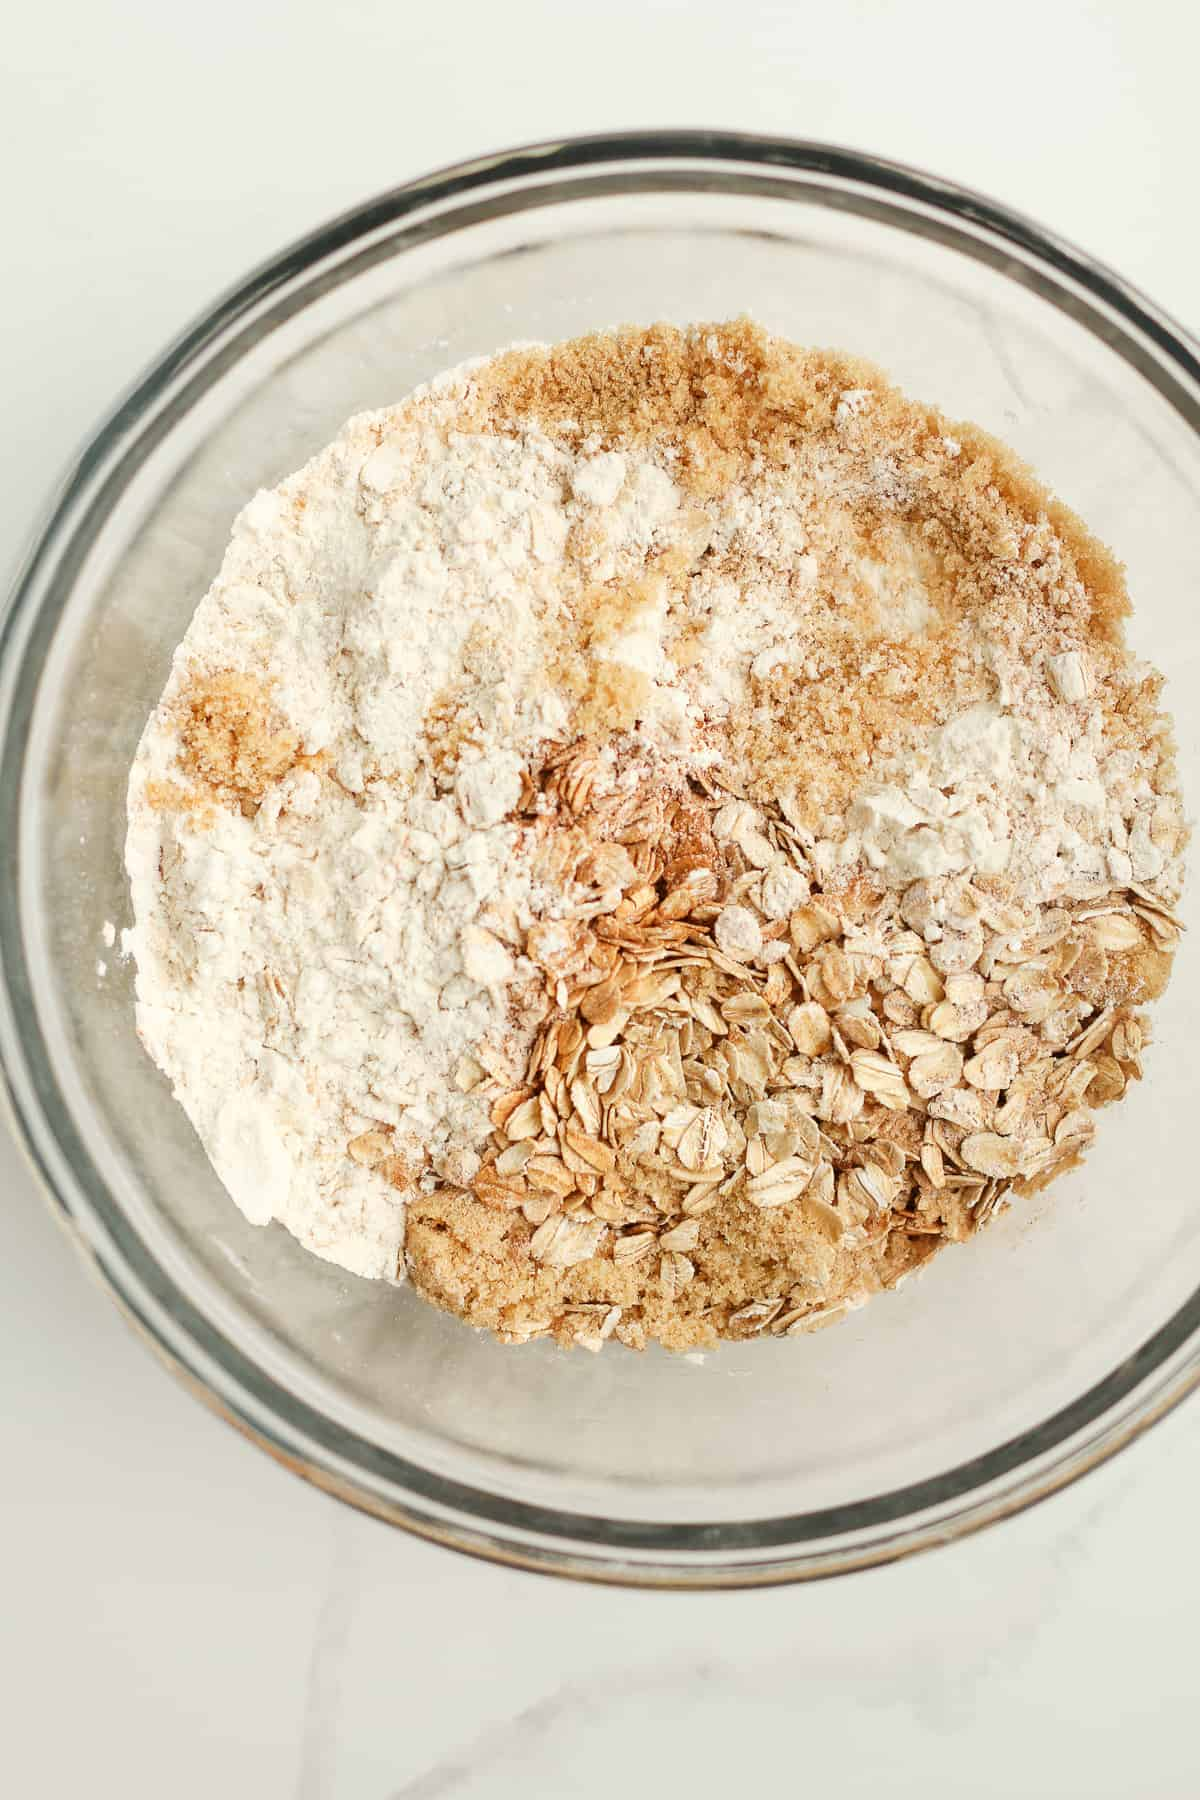 A bowl of the dry ingredients.